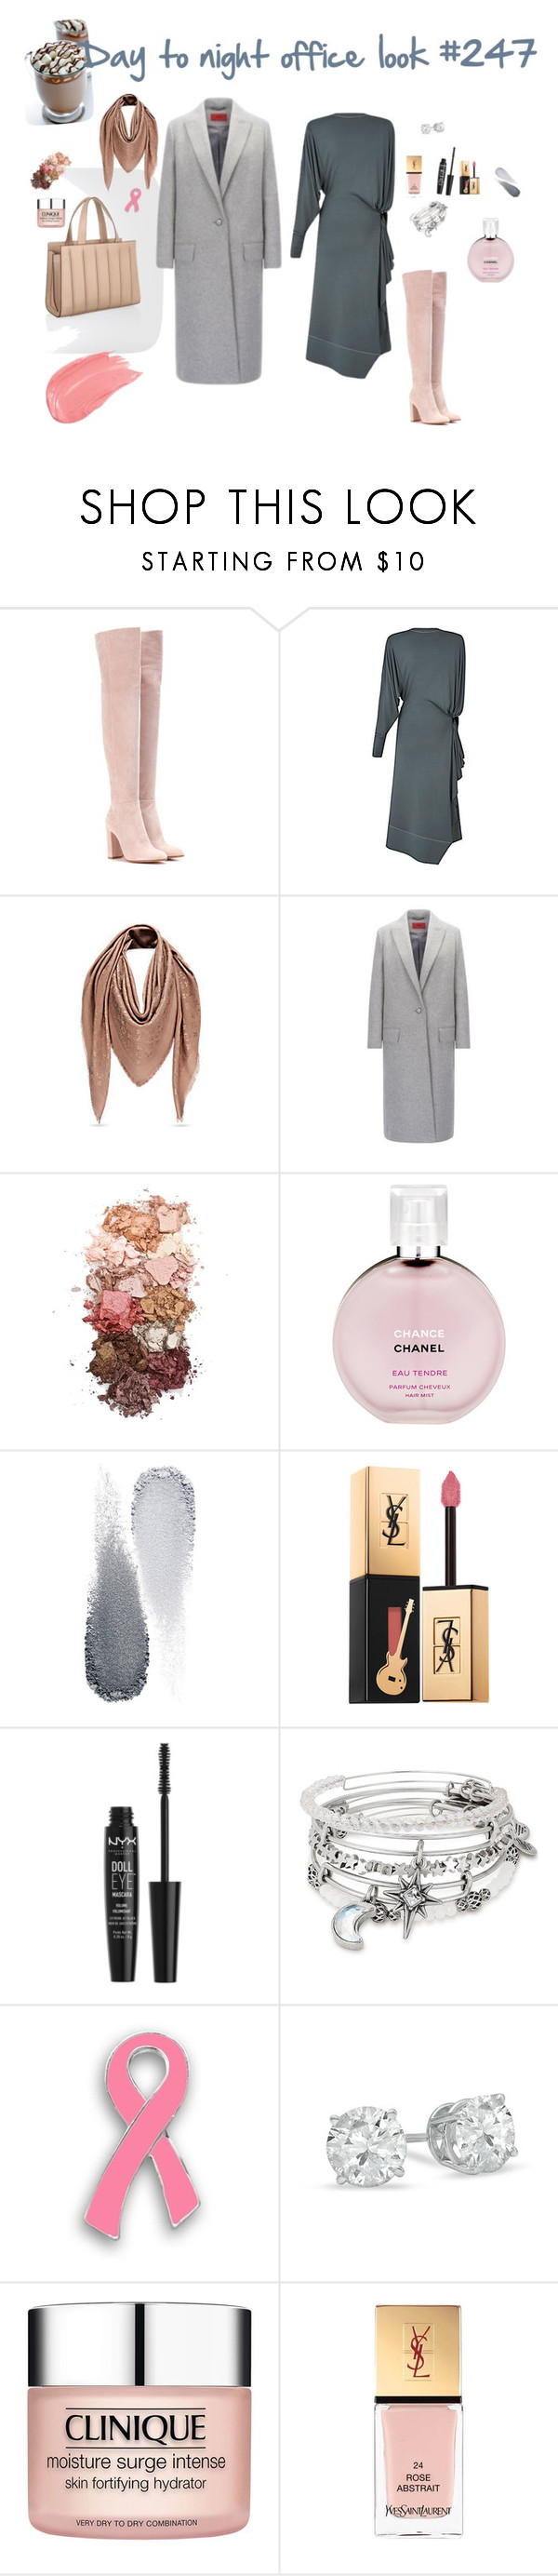 """""""Day to night office look #247"""" by modaelista ❤ liked on Polyvore featuring Gianvito Rossi, HUGO, Sigma, Chanel, Clé de Peau Beauté, Yves Saint Laurent, NYX, Alex and Ani and Clinique"""